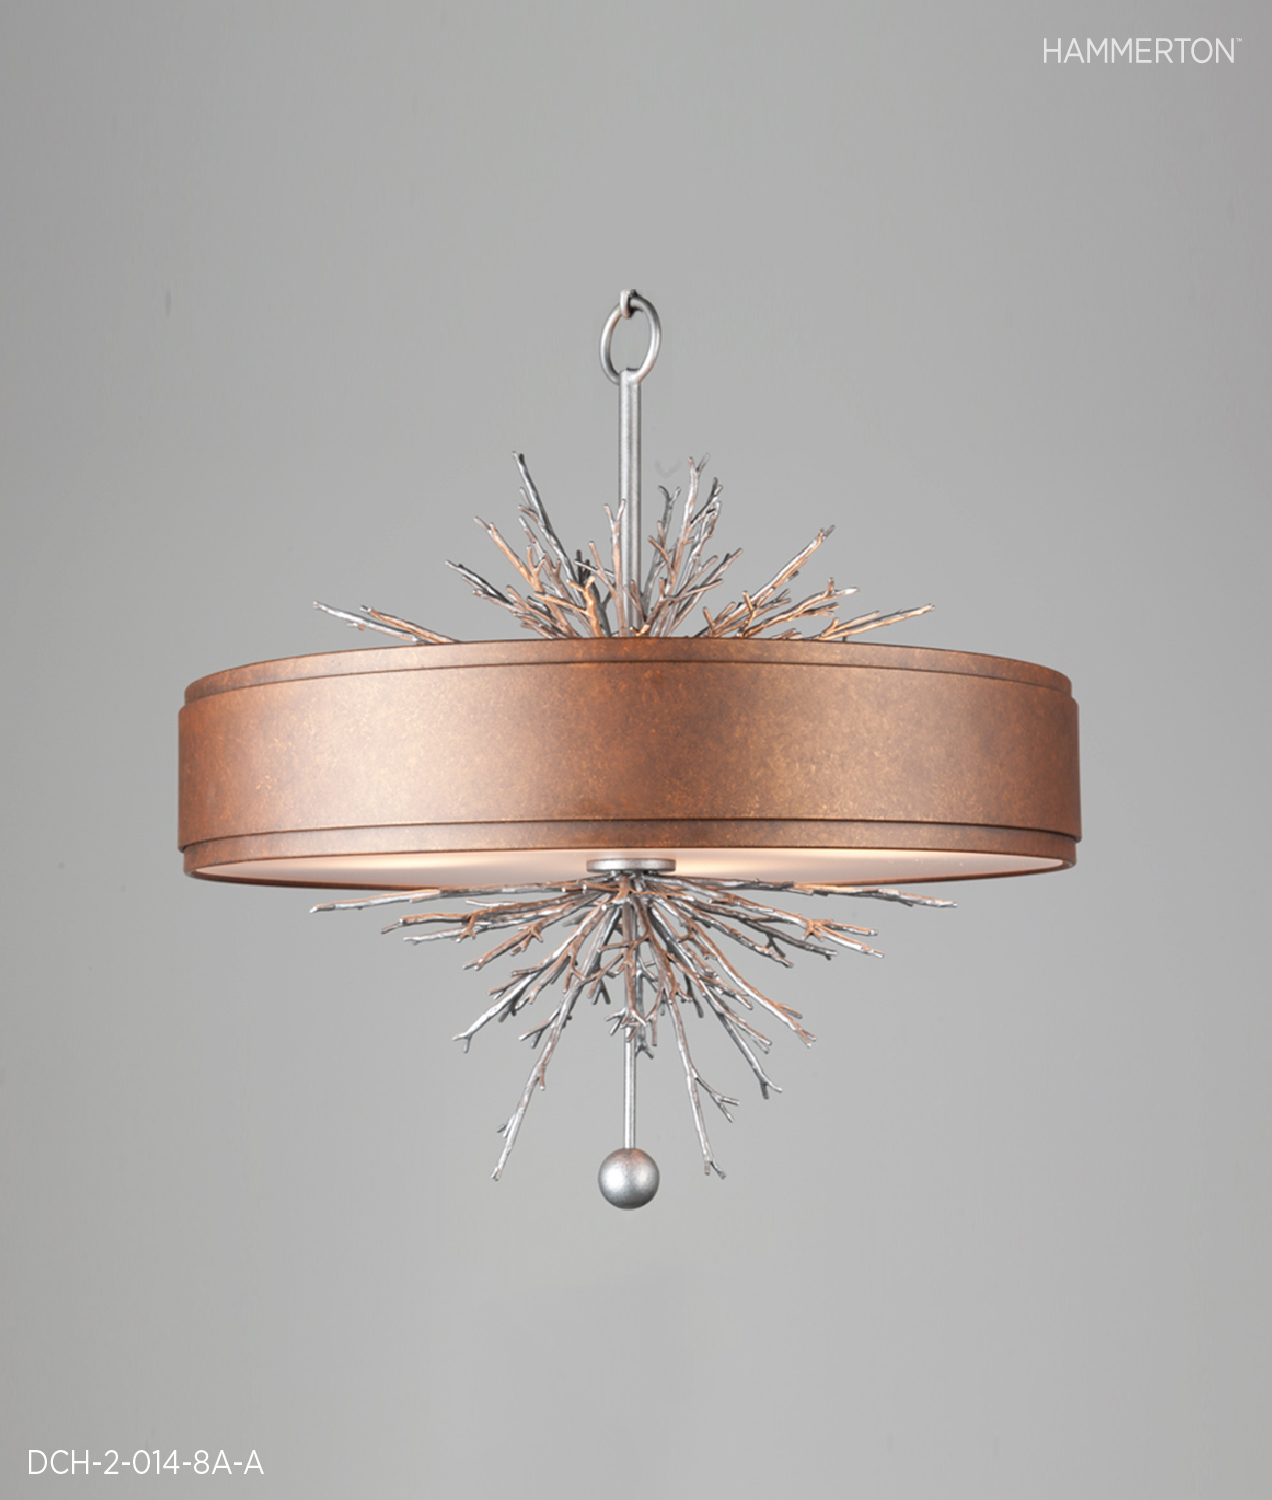 """Two-tone drum, 21""""H x 20""""Dia with organic detail. Antique Copper and Antique Iron finishes.     Fixture: DCH-2-014-8A-A"""